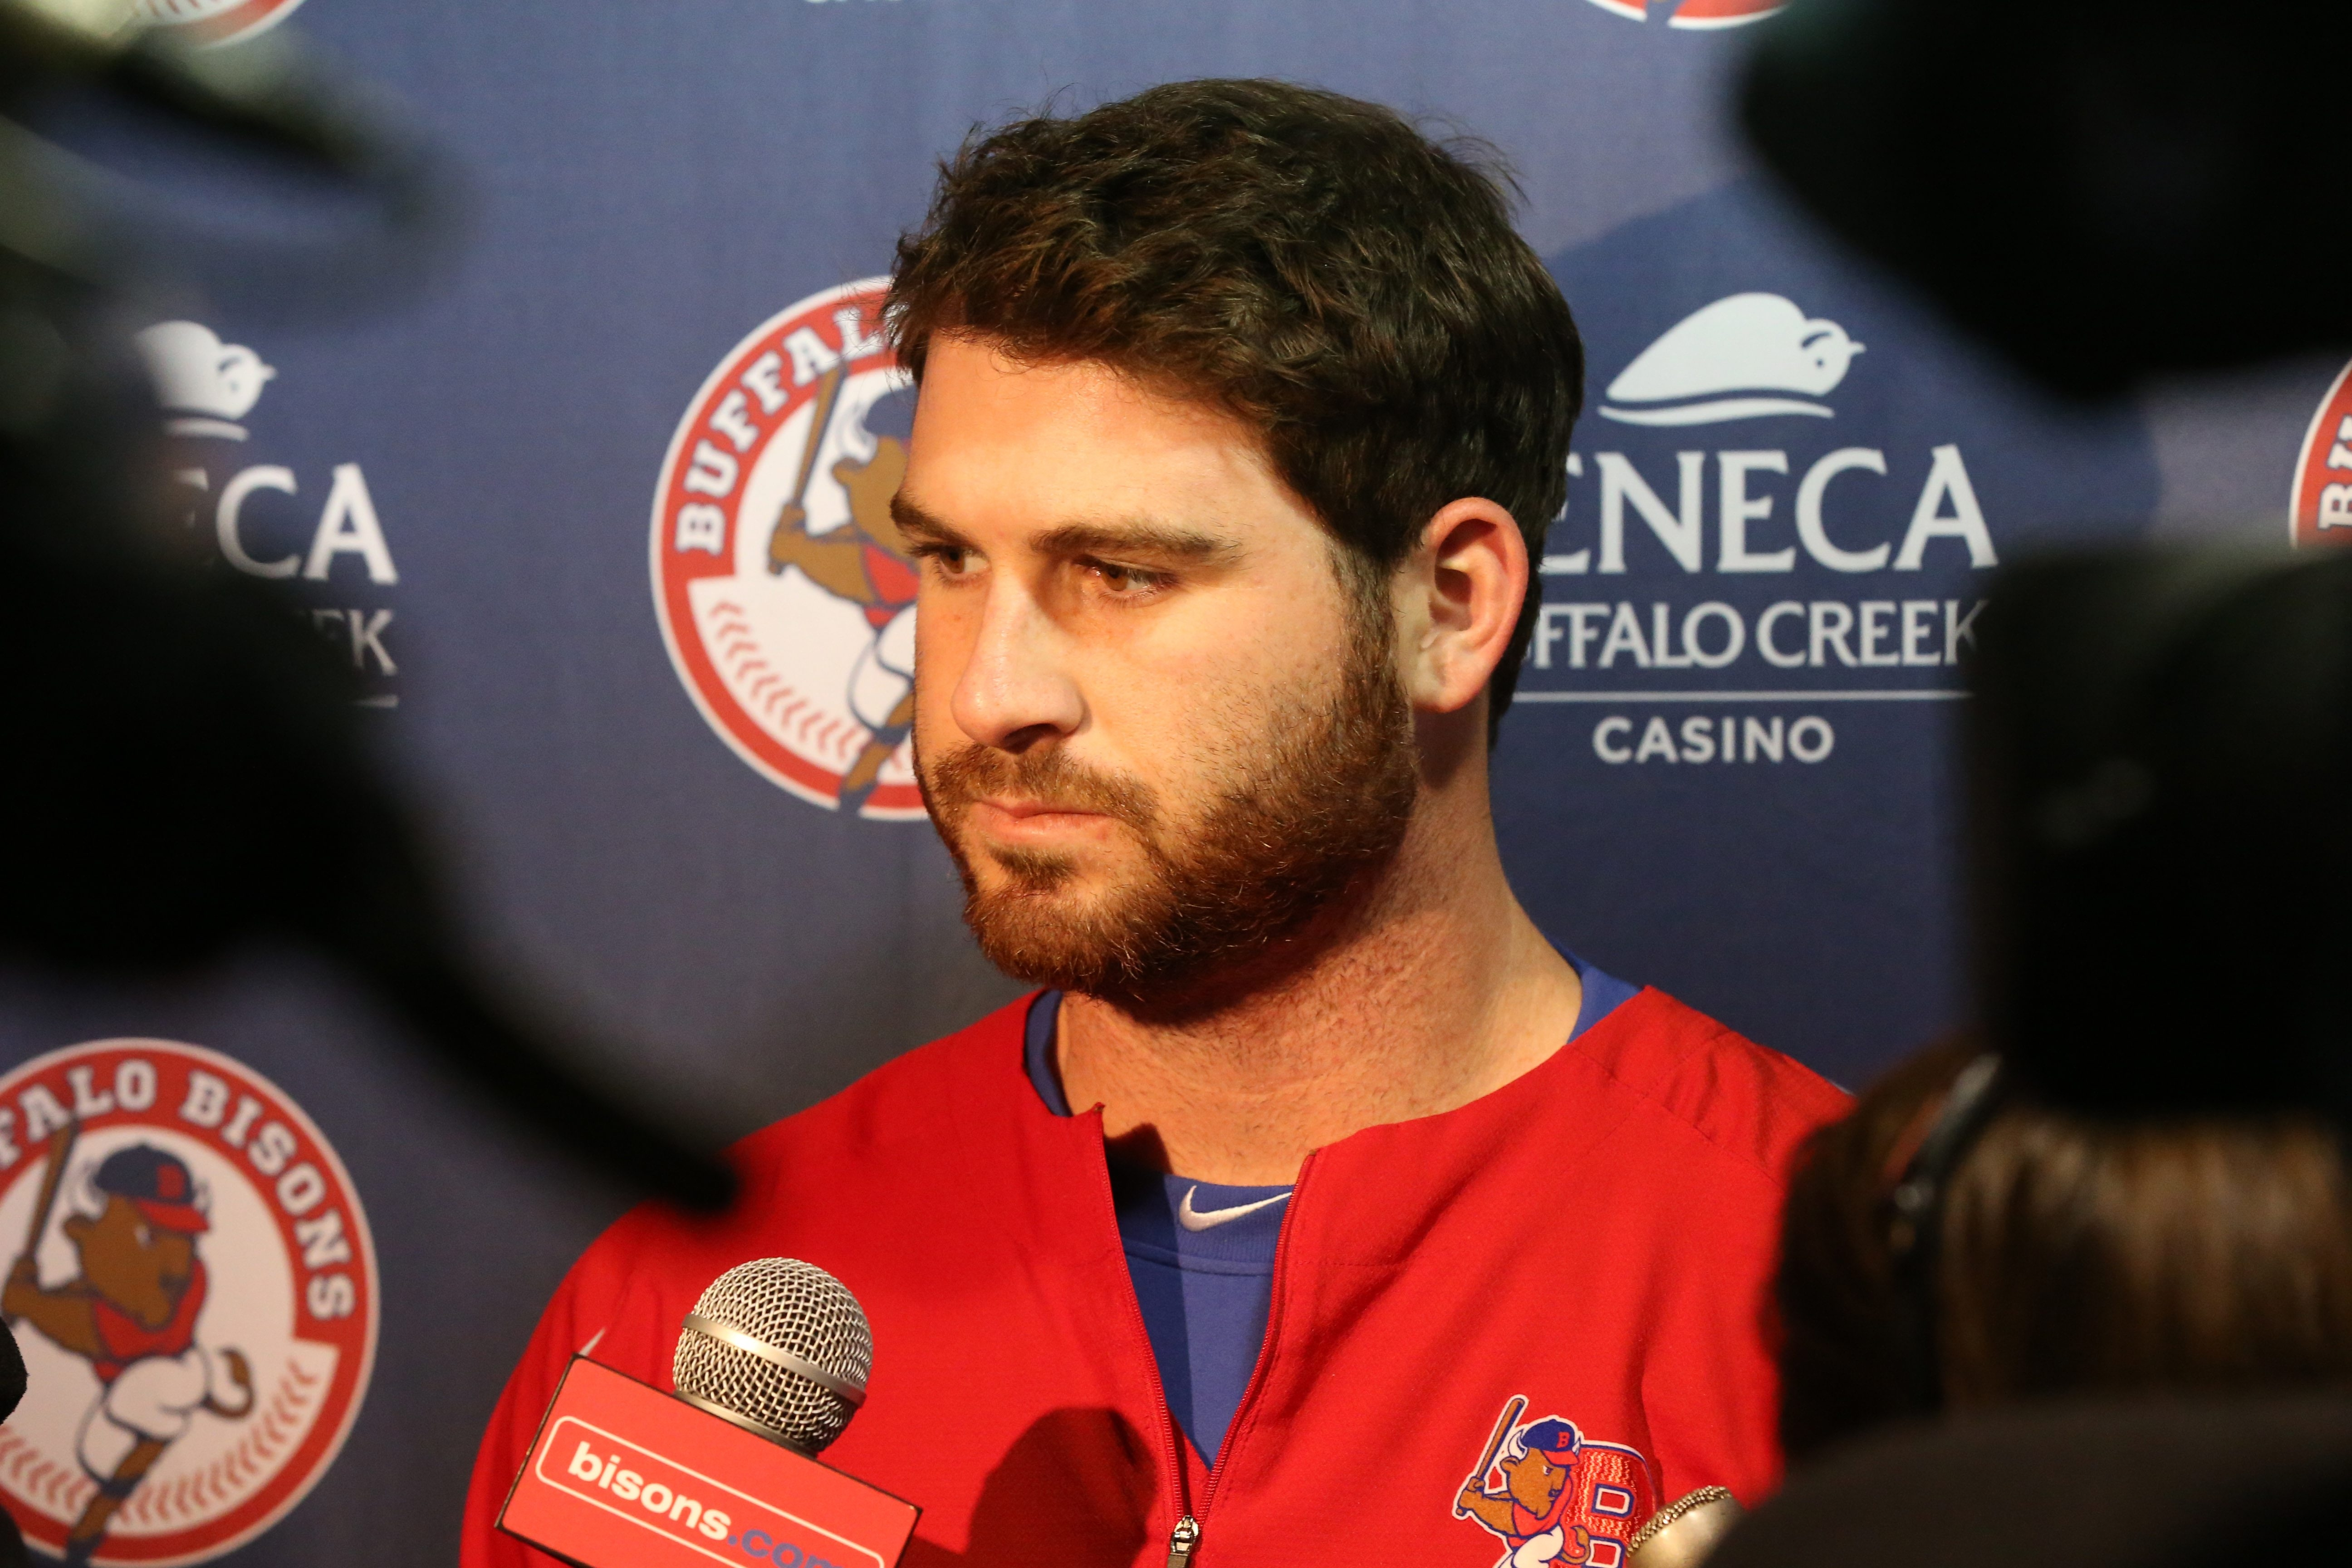 Buffalo Bison's opening day starting pitcher Drew Hutchison talks to the press at Coca-Cola Field in Buffalo,NY on Tuesday, April 5, 2016.  (James P. McCoy/ Buffalo News)